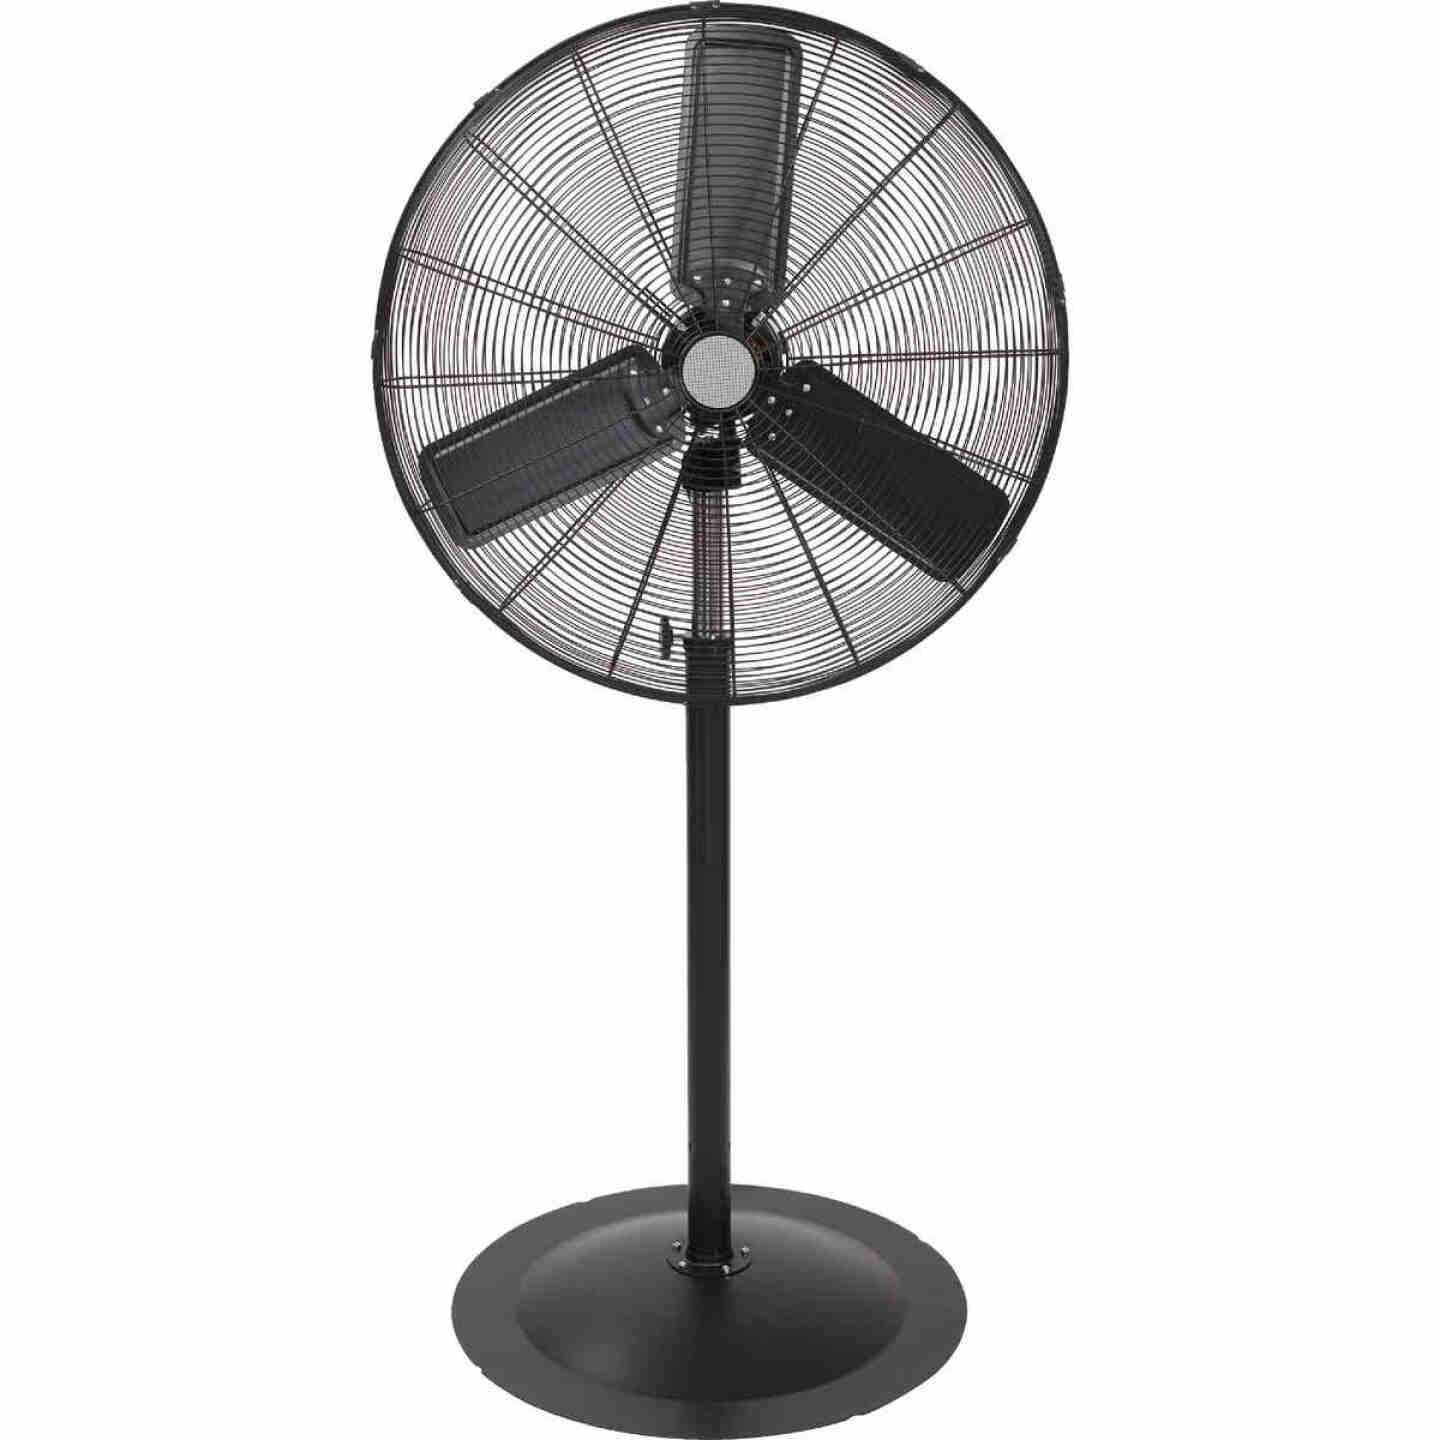 30 In. 2-Speed 60 In. to 78 In. H. Oscillating Pedestal Fan Image 1